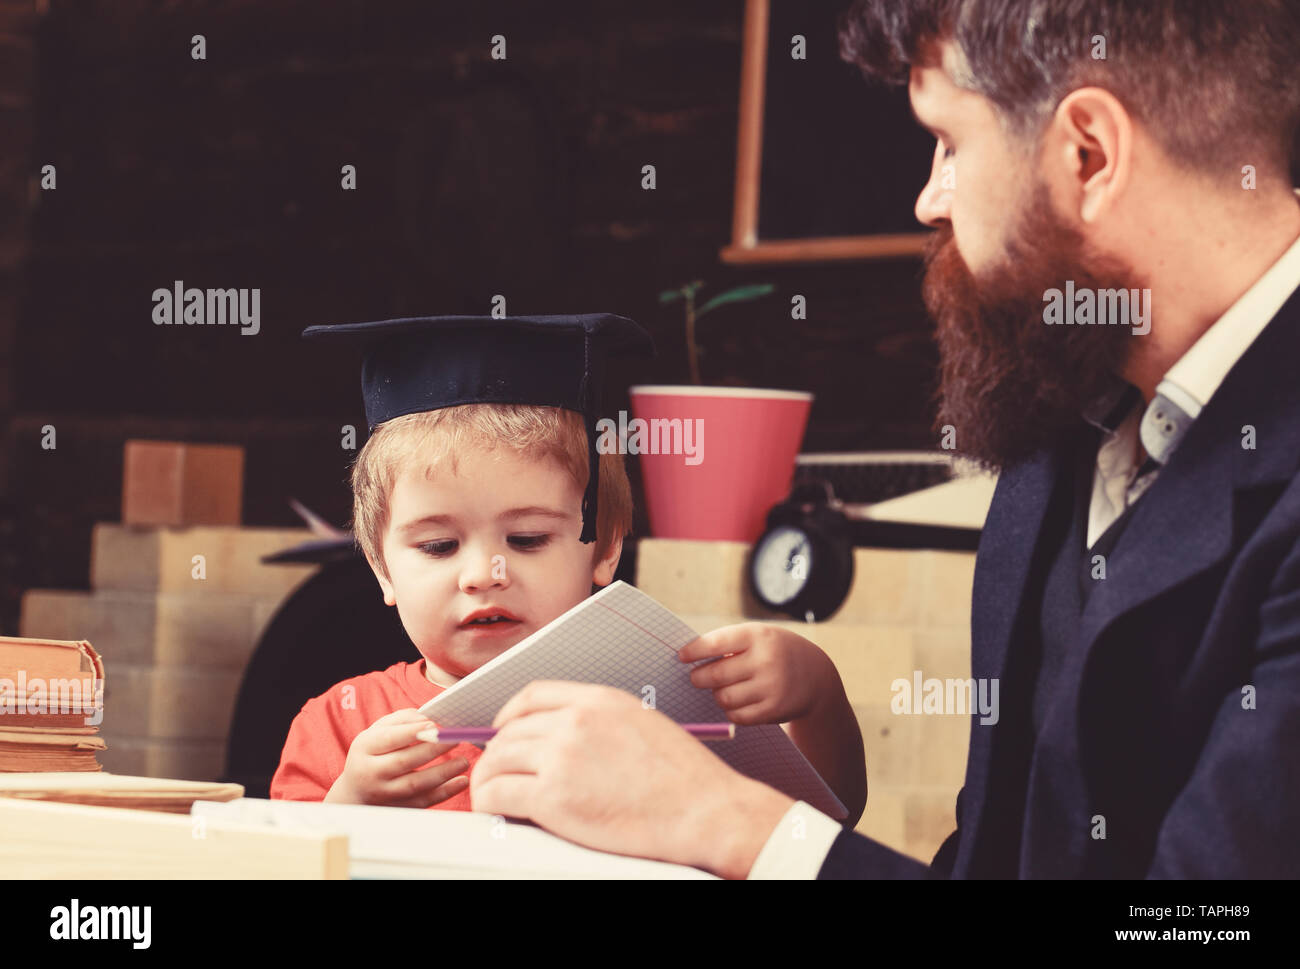 Elementary education concept. Kid studies with teacher, listening with attention. Teacher and pupil in mortarboard, chalkboard on background. Father teaches son elementary knowledge, discuss, explain. - Stock Image